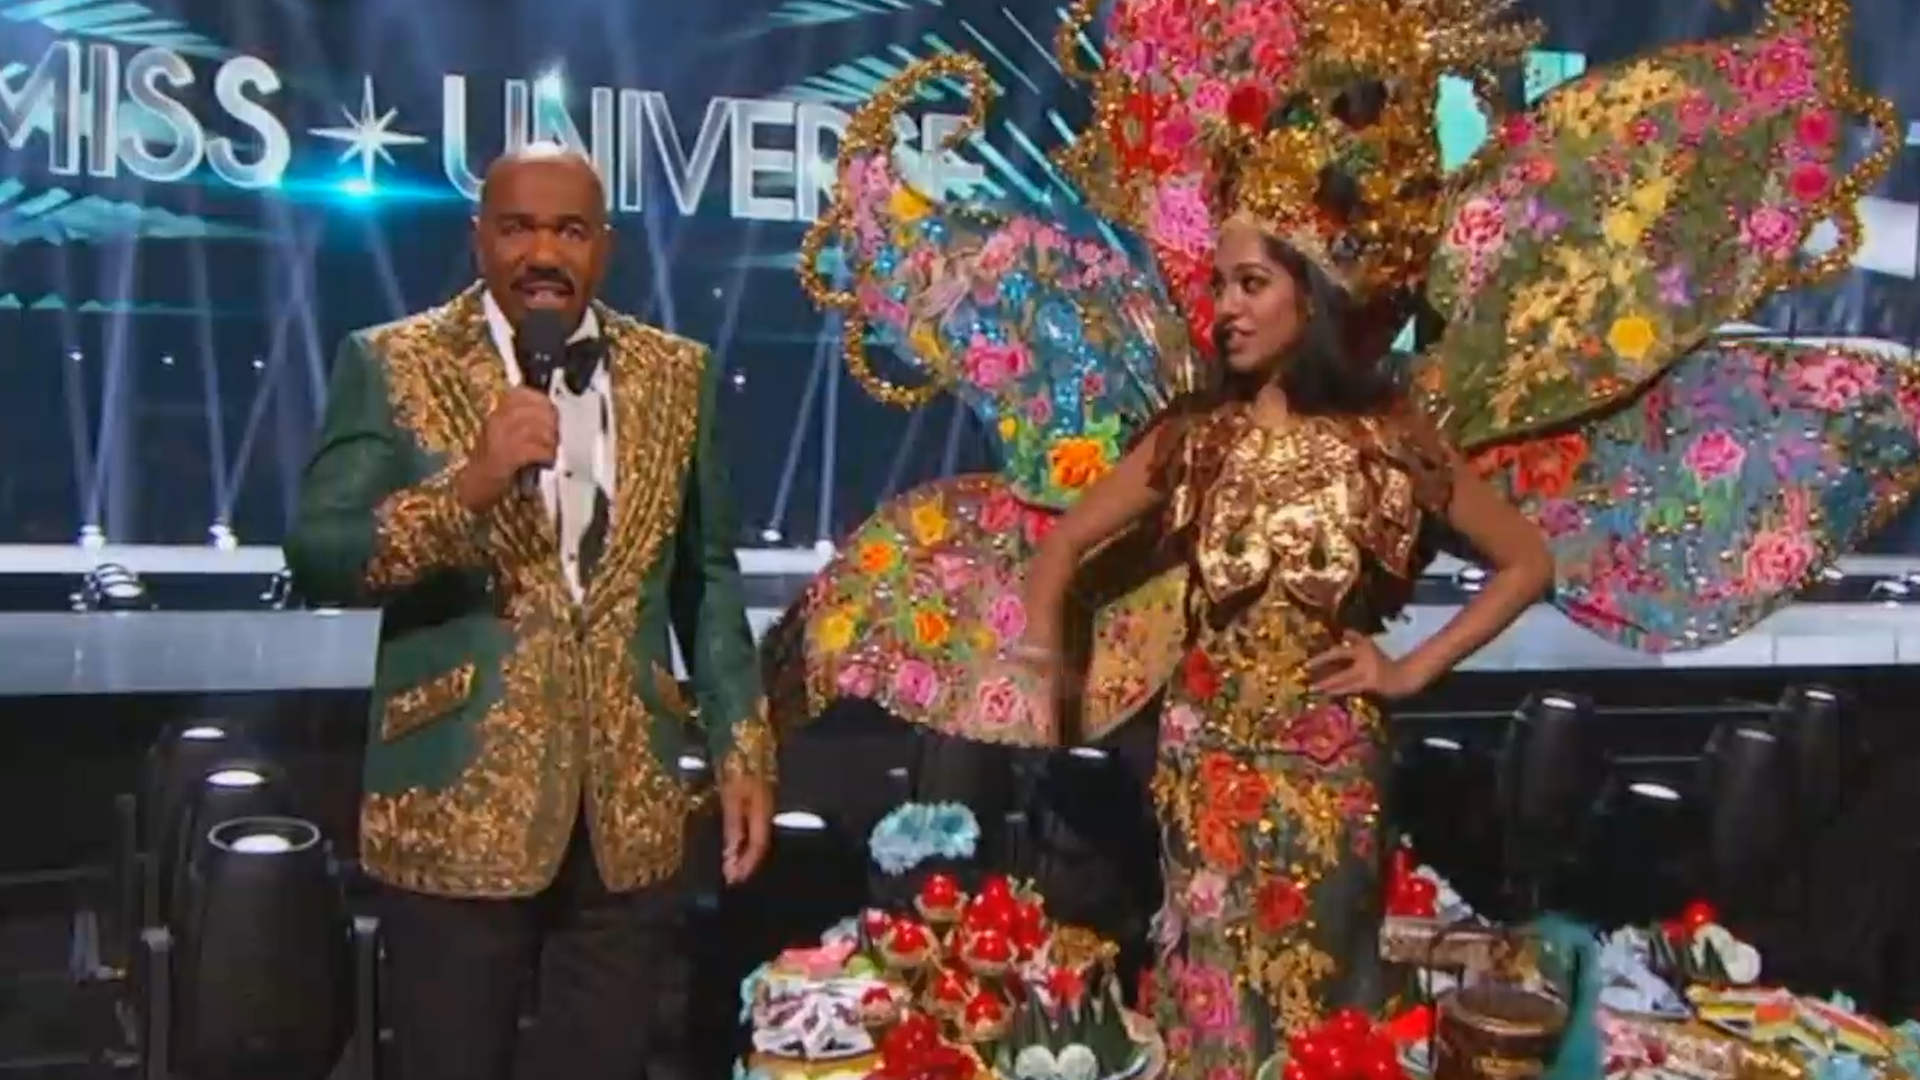 Steve Harvey Has Another Brutal Night Hosting Miss Universe